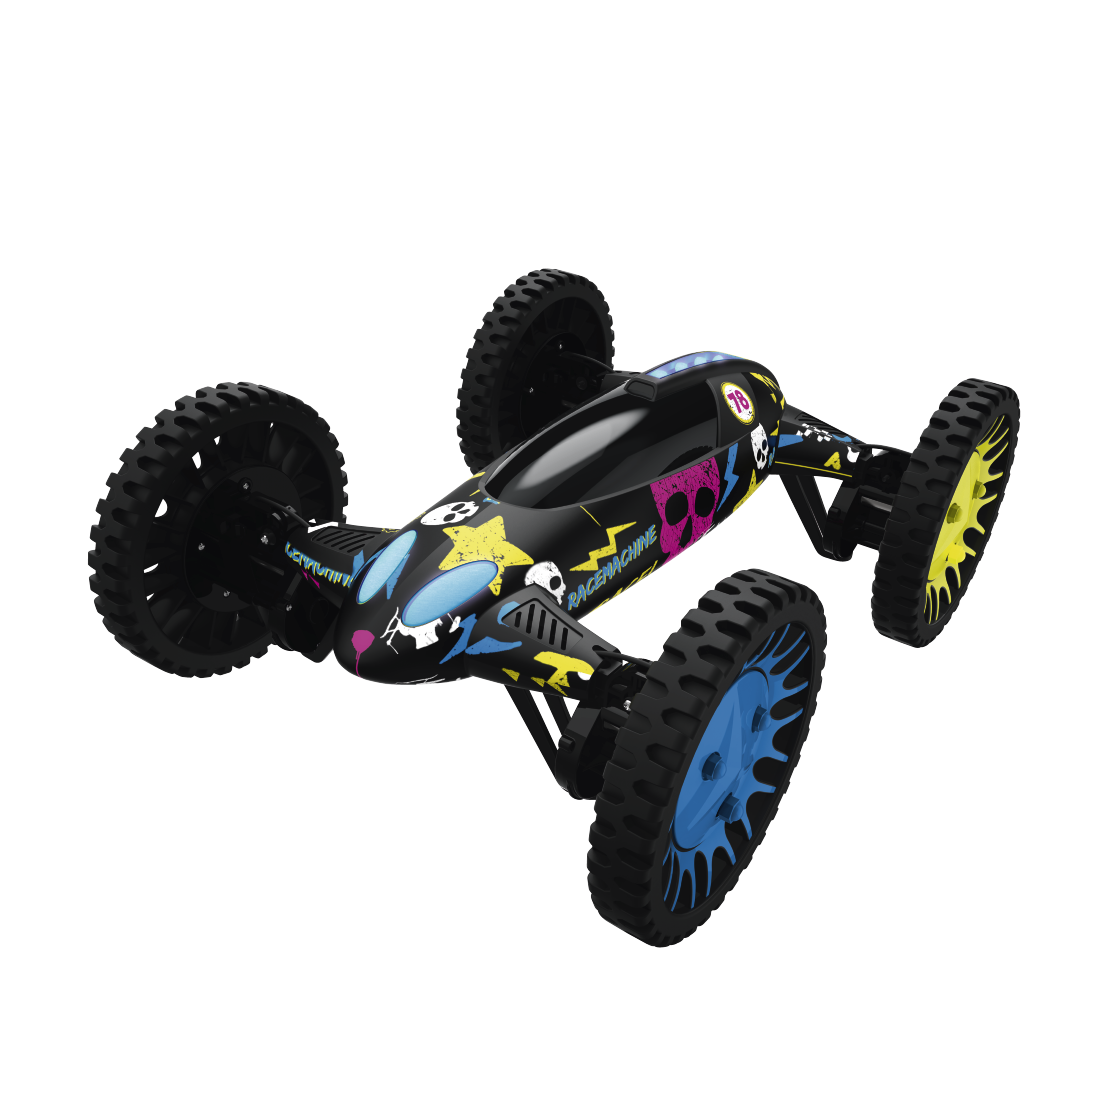 "abx2 High-Res Image 2 - Hama, ""Racemachine"" 2-in-1 Quadrocopter/RC Car, 6-Axis Gyro-Sensor, 720p Camera"